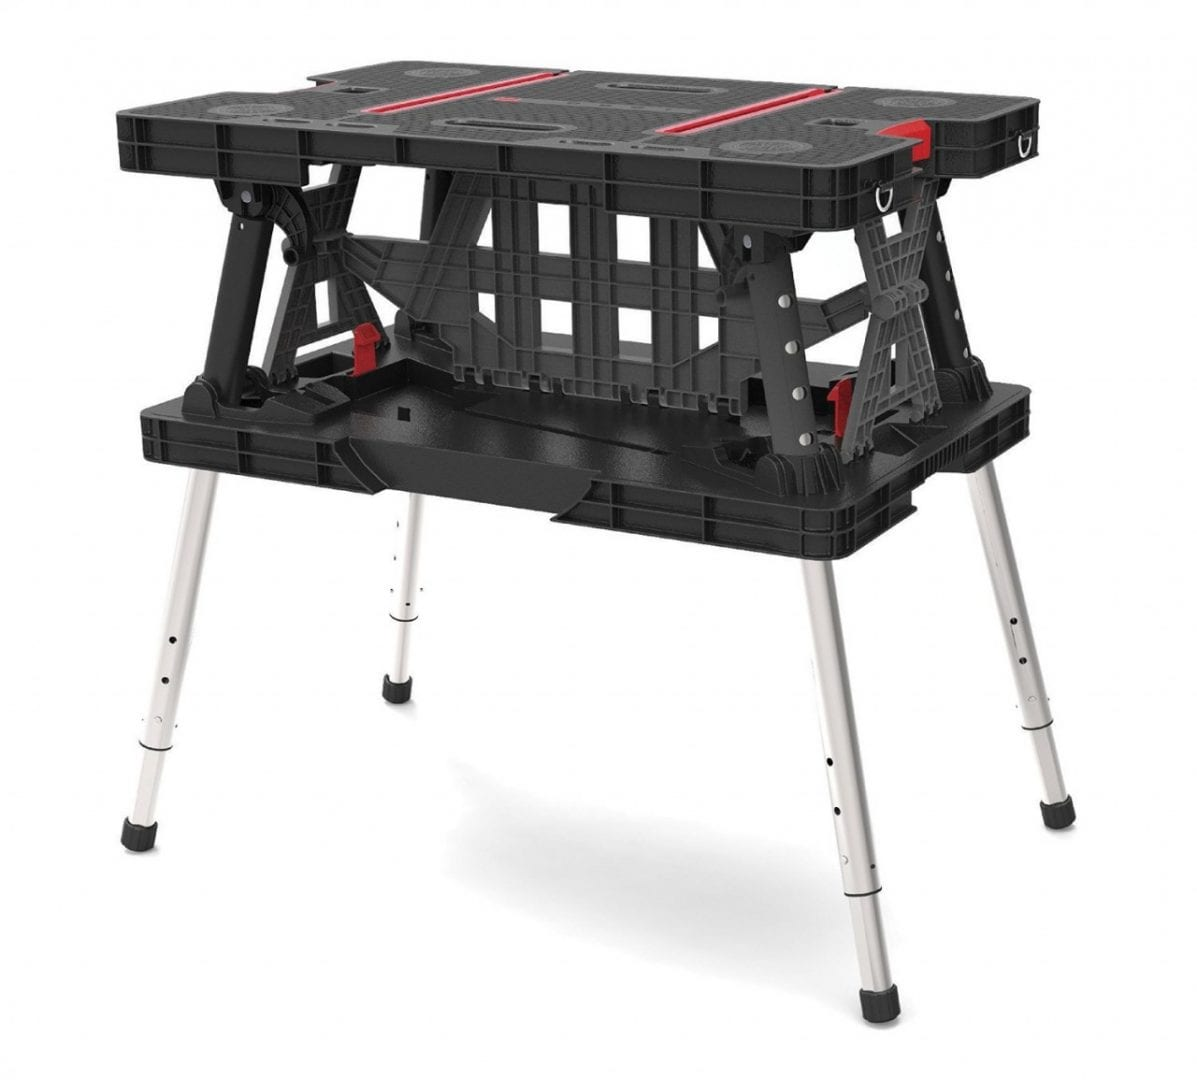 Keter adjustable Folding Compact Table Work Station Solution6